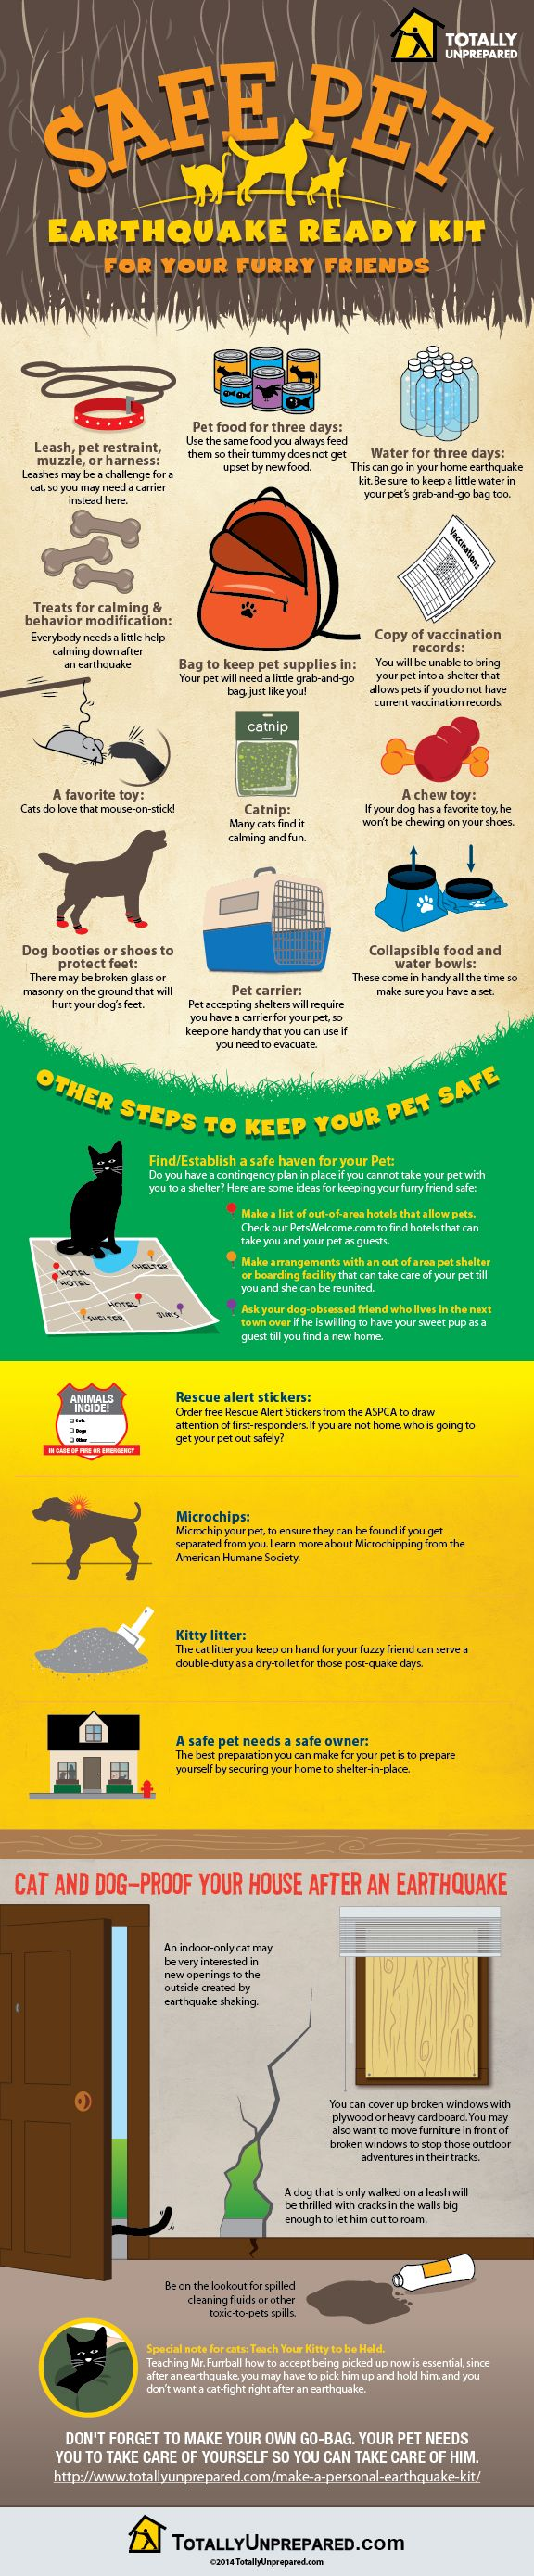 Are your pets prepared for an earthquake? Here's a checklist on what to include in their emergency bag - Infographic